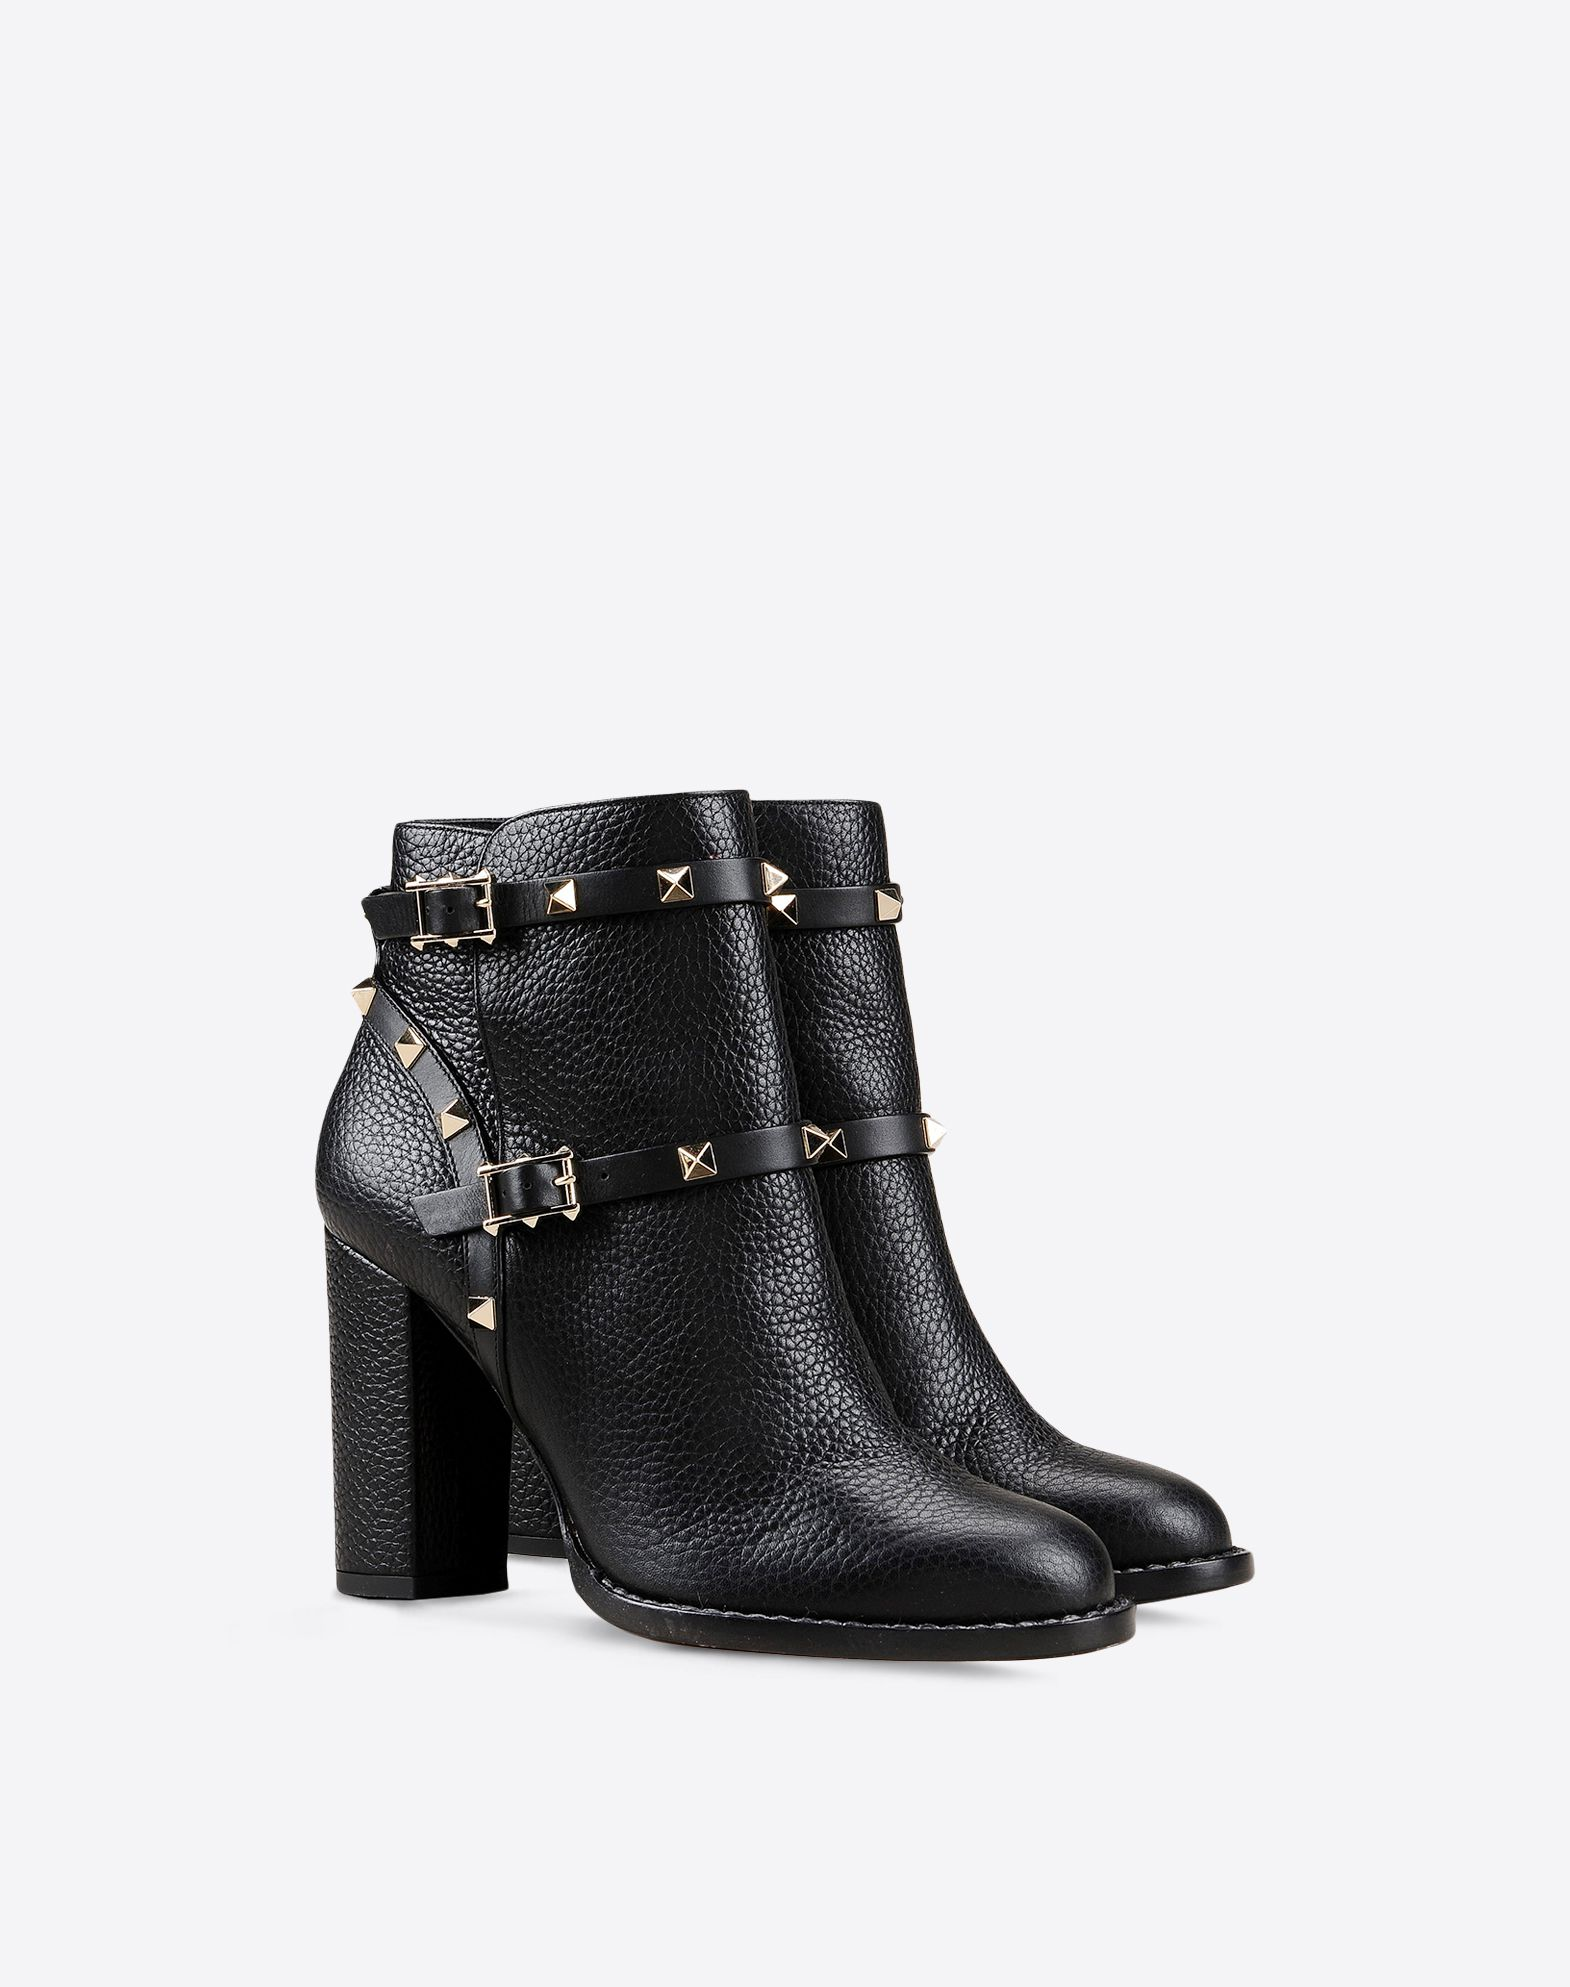 VALENTINO Studs Buckle Leather sole Round toeline Covered heel Textured leather  11075659rk